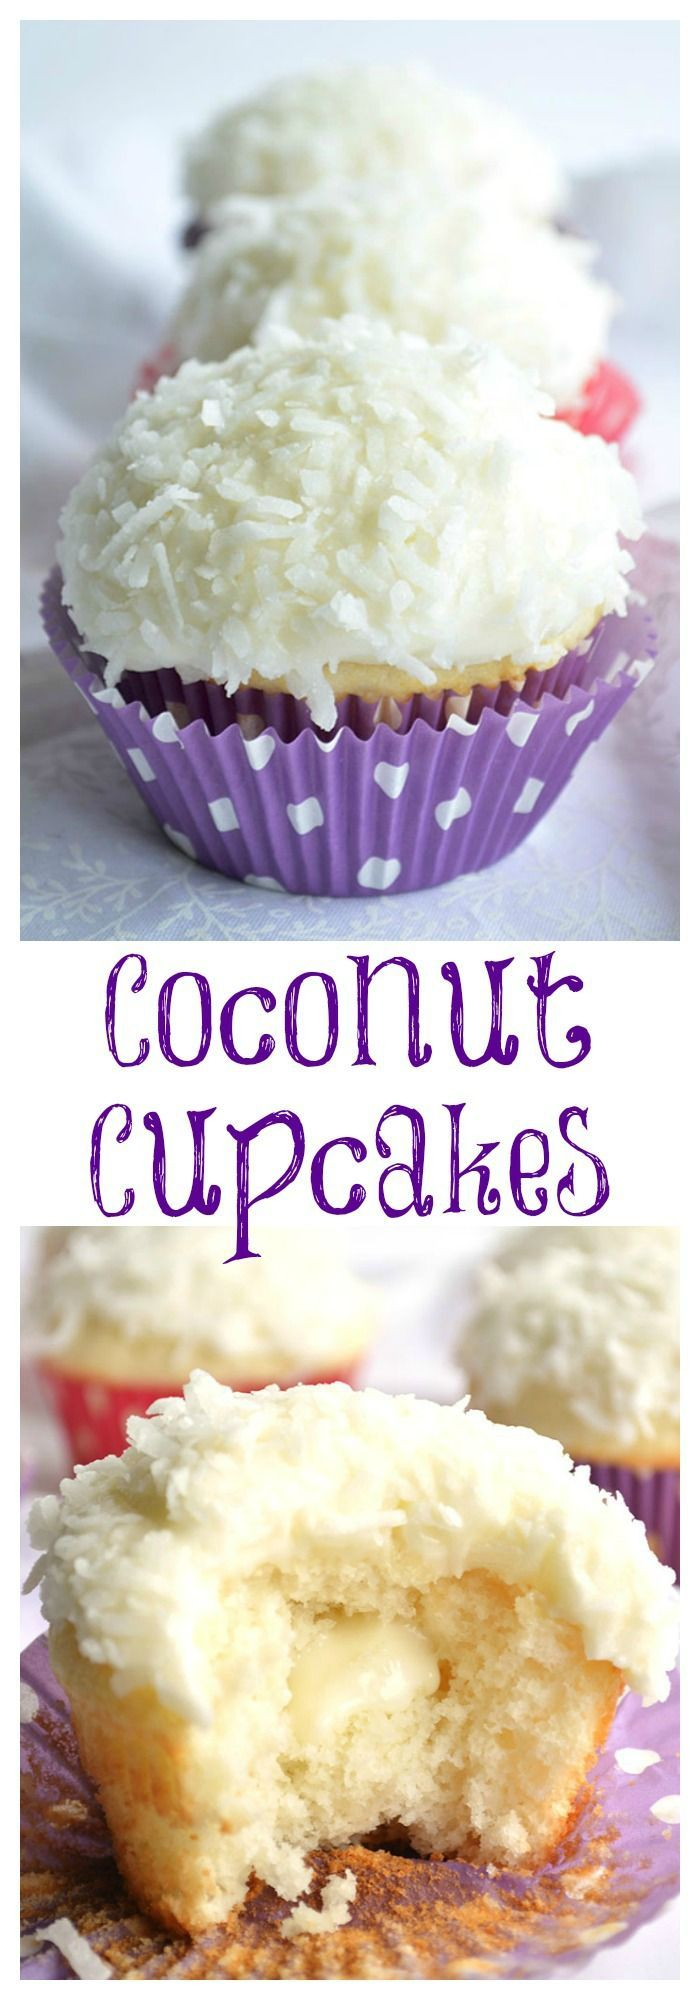 Coconut Cupcakes | Recipe | Pinterest | Coconut frosting, Frosting and Coconut